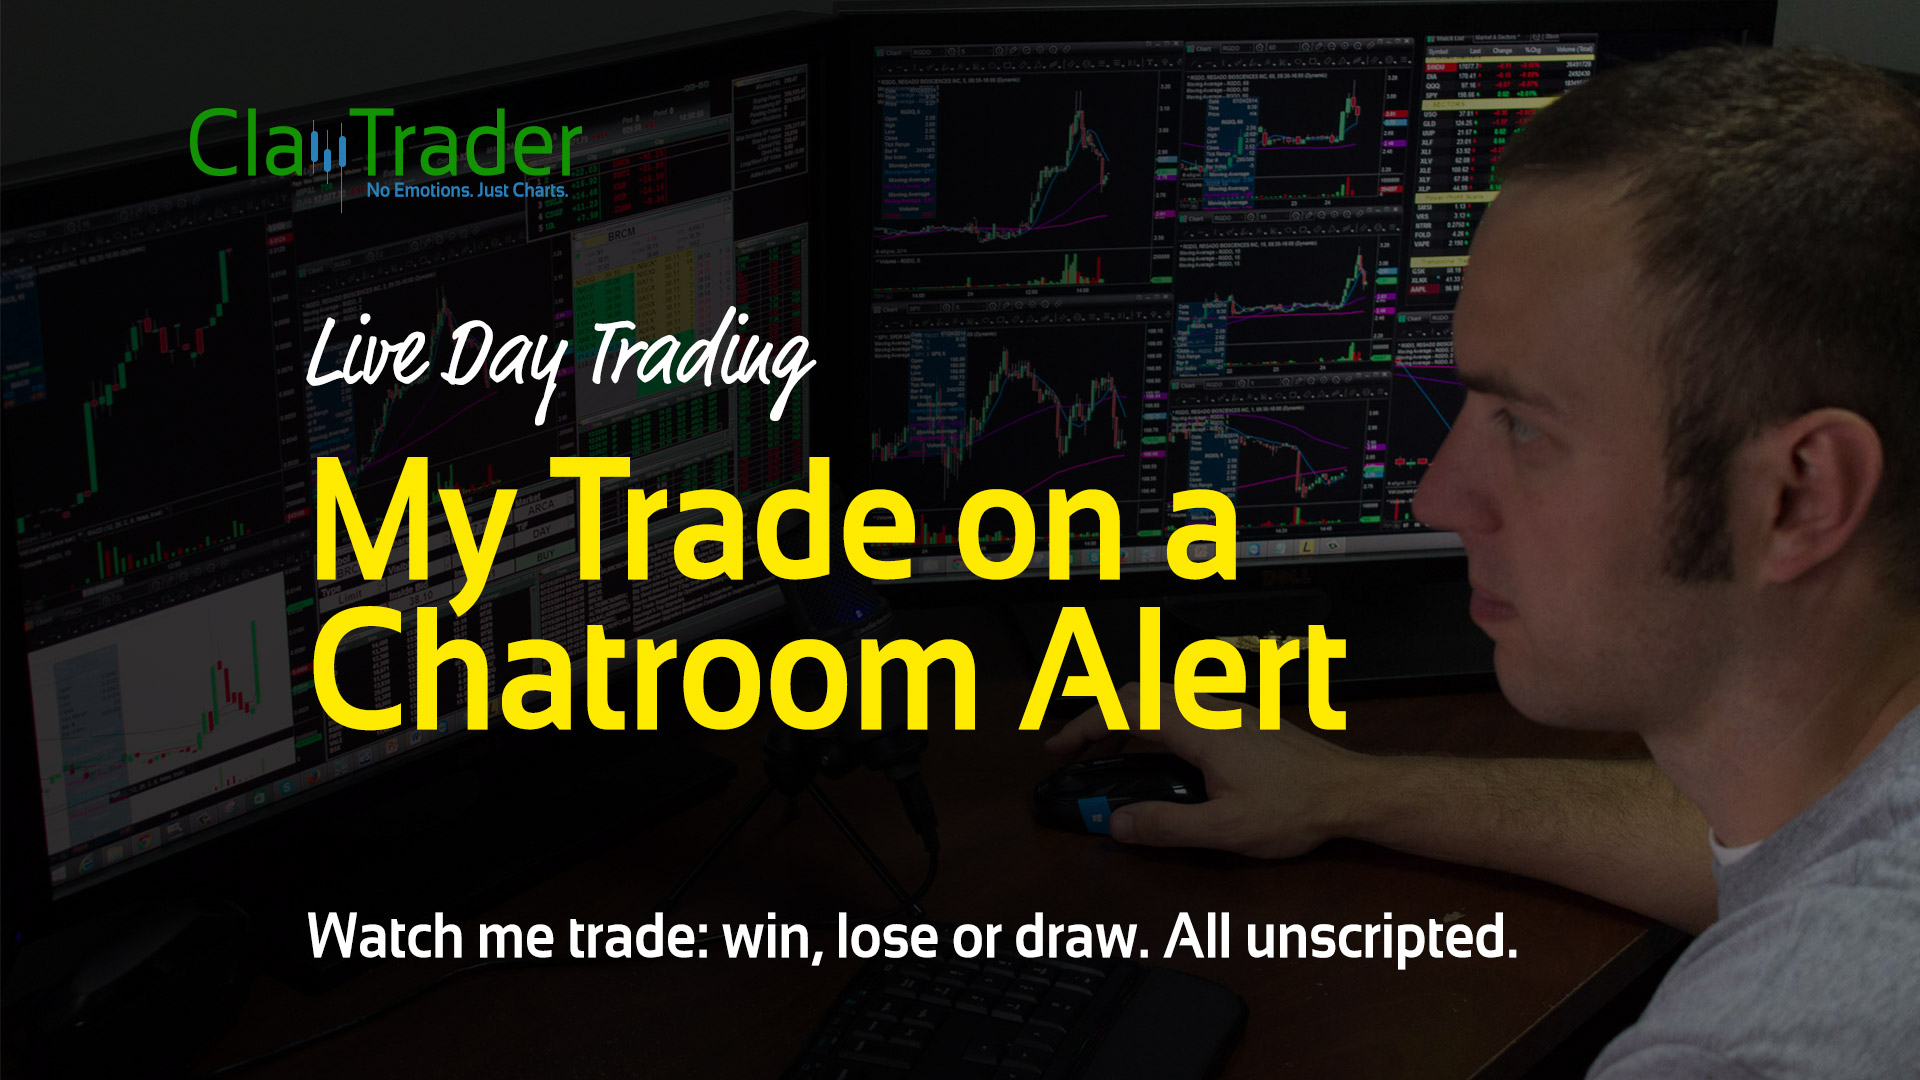 Live Day Trading – My Trade on a Chatroom Alert